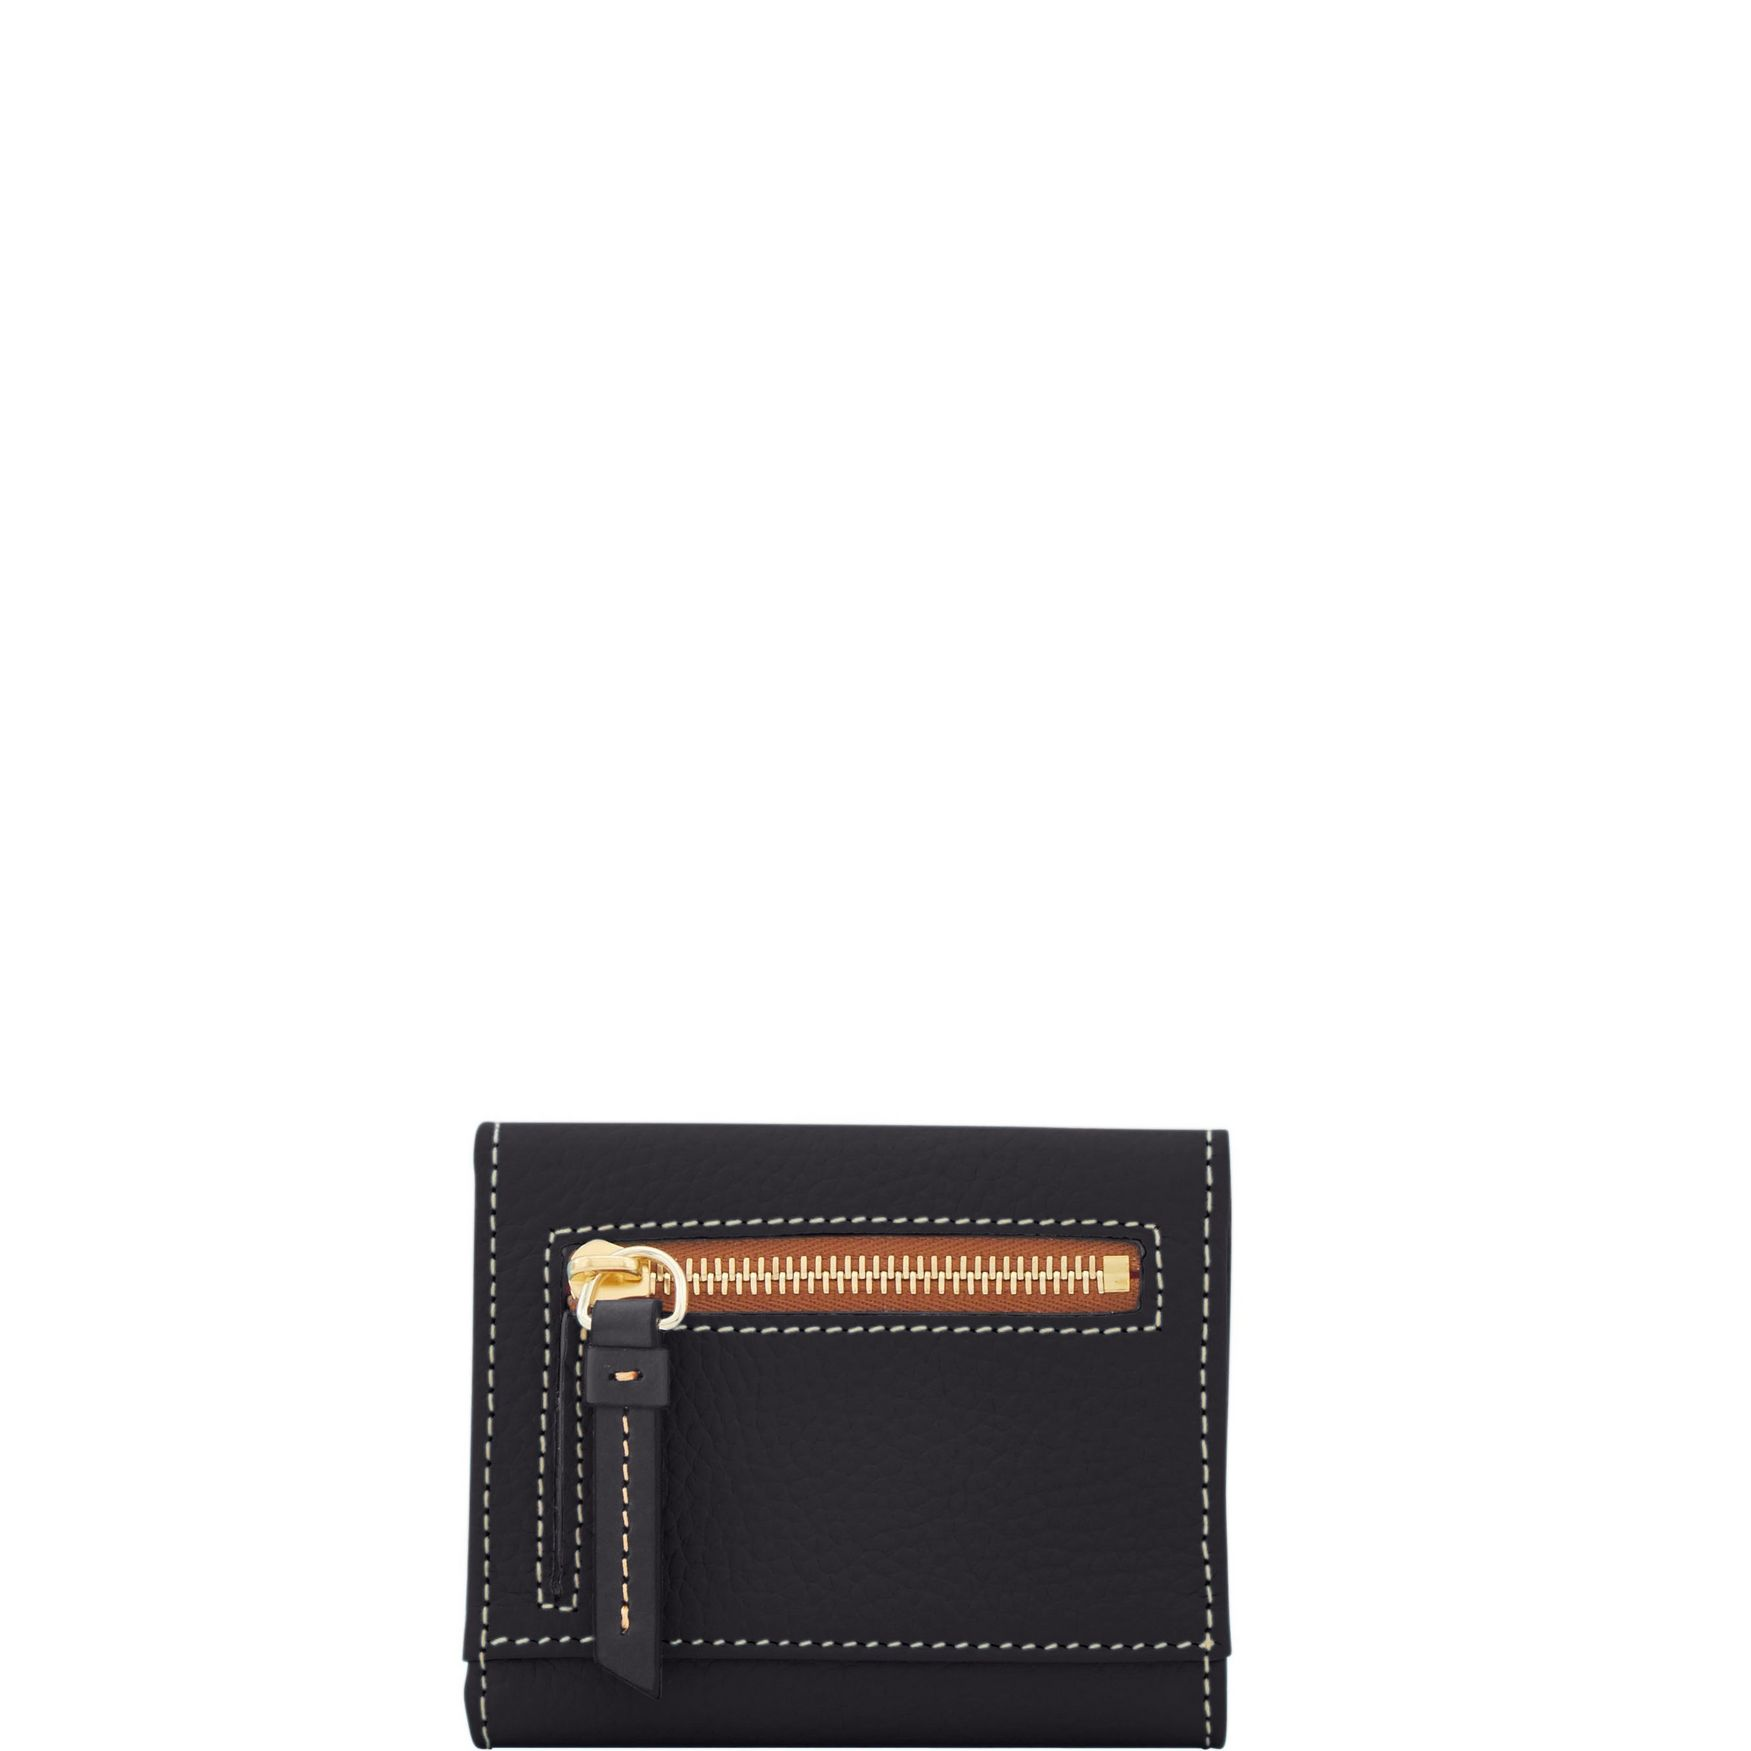 Dooney-amp-Bourke-Pebble-Grain-Small-Flap-Wallet thumbnail 10